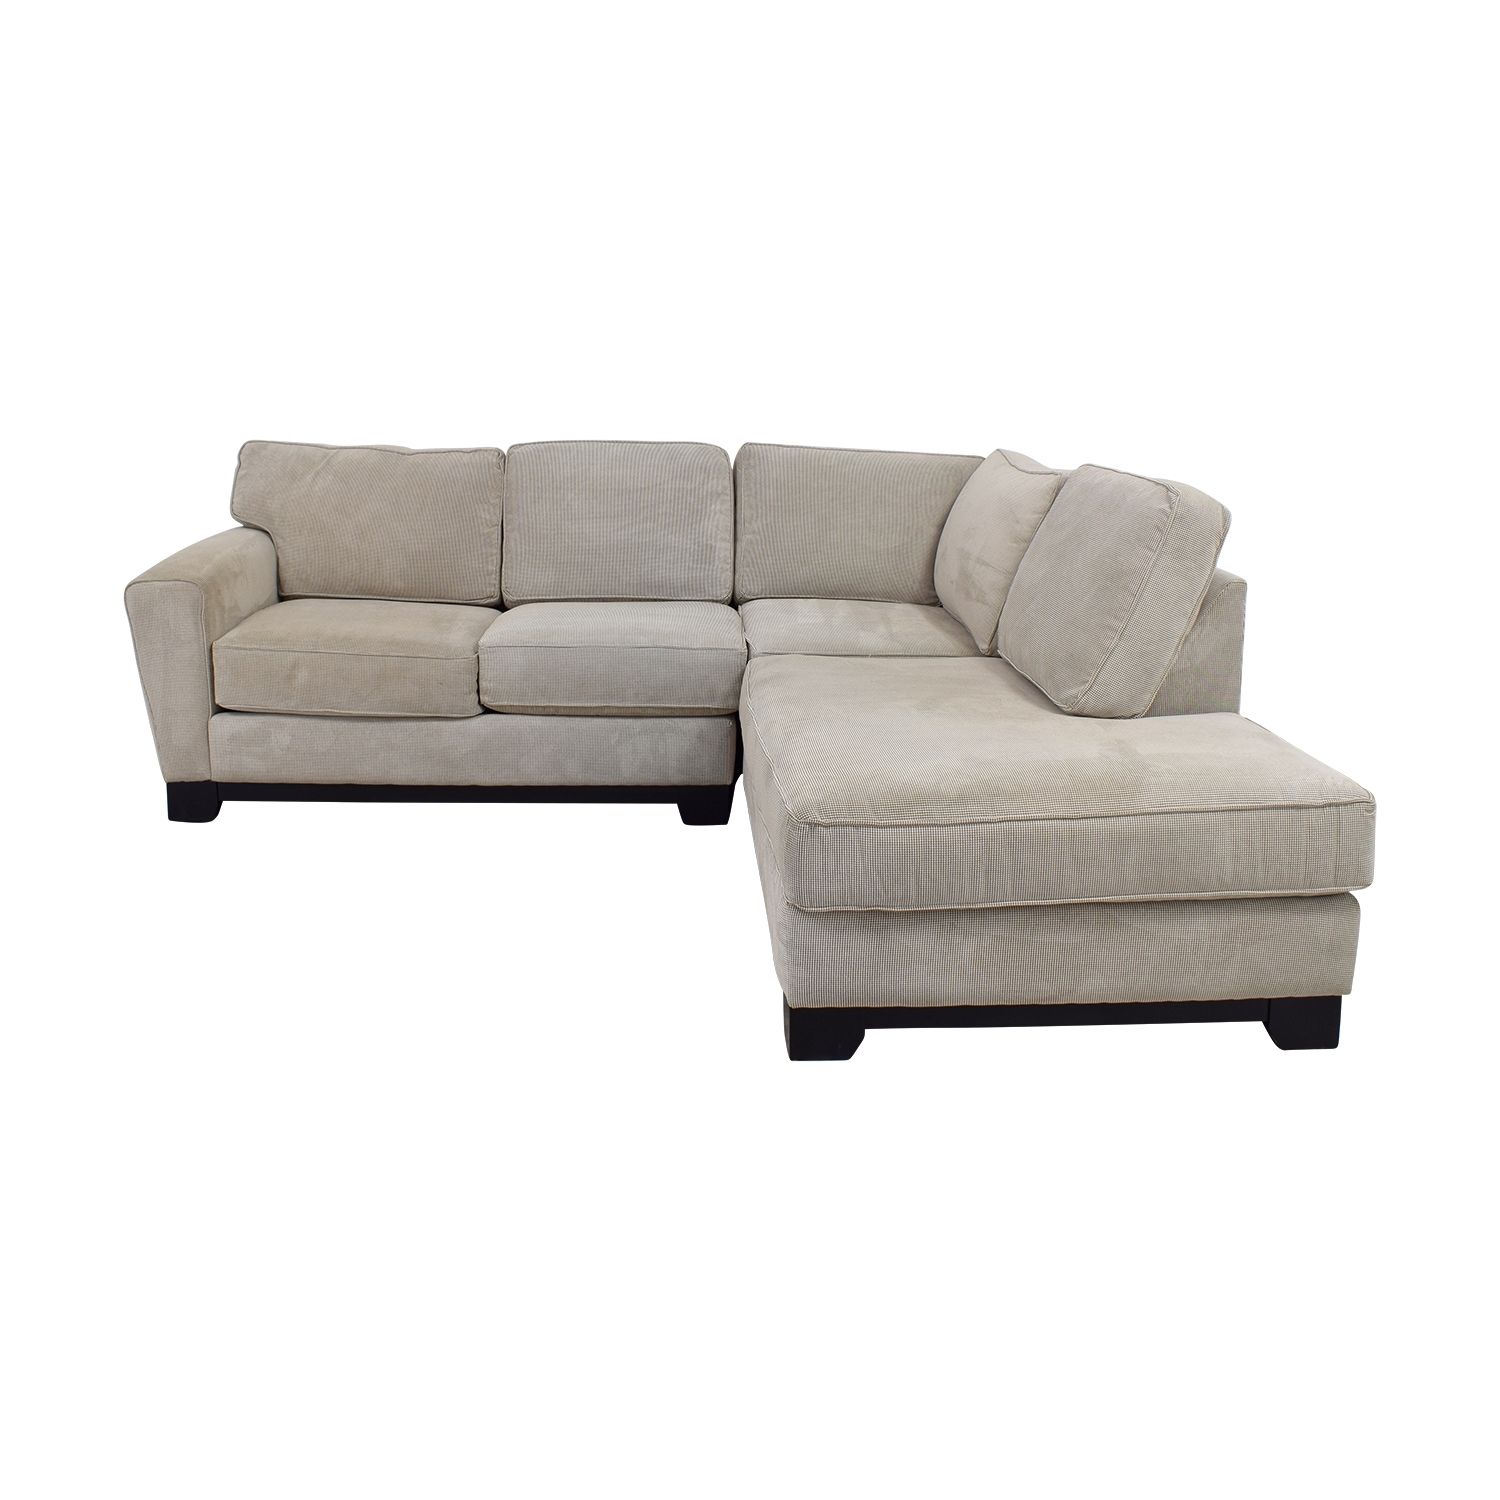 84% Off - Jordan's Furniture Jordan's Furniture Beige L-Shaped in Jordans Sectional Sofas